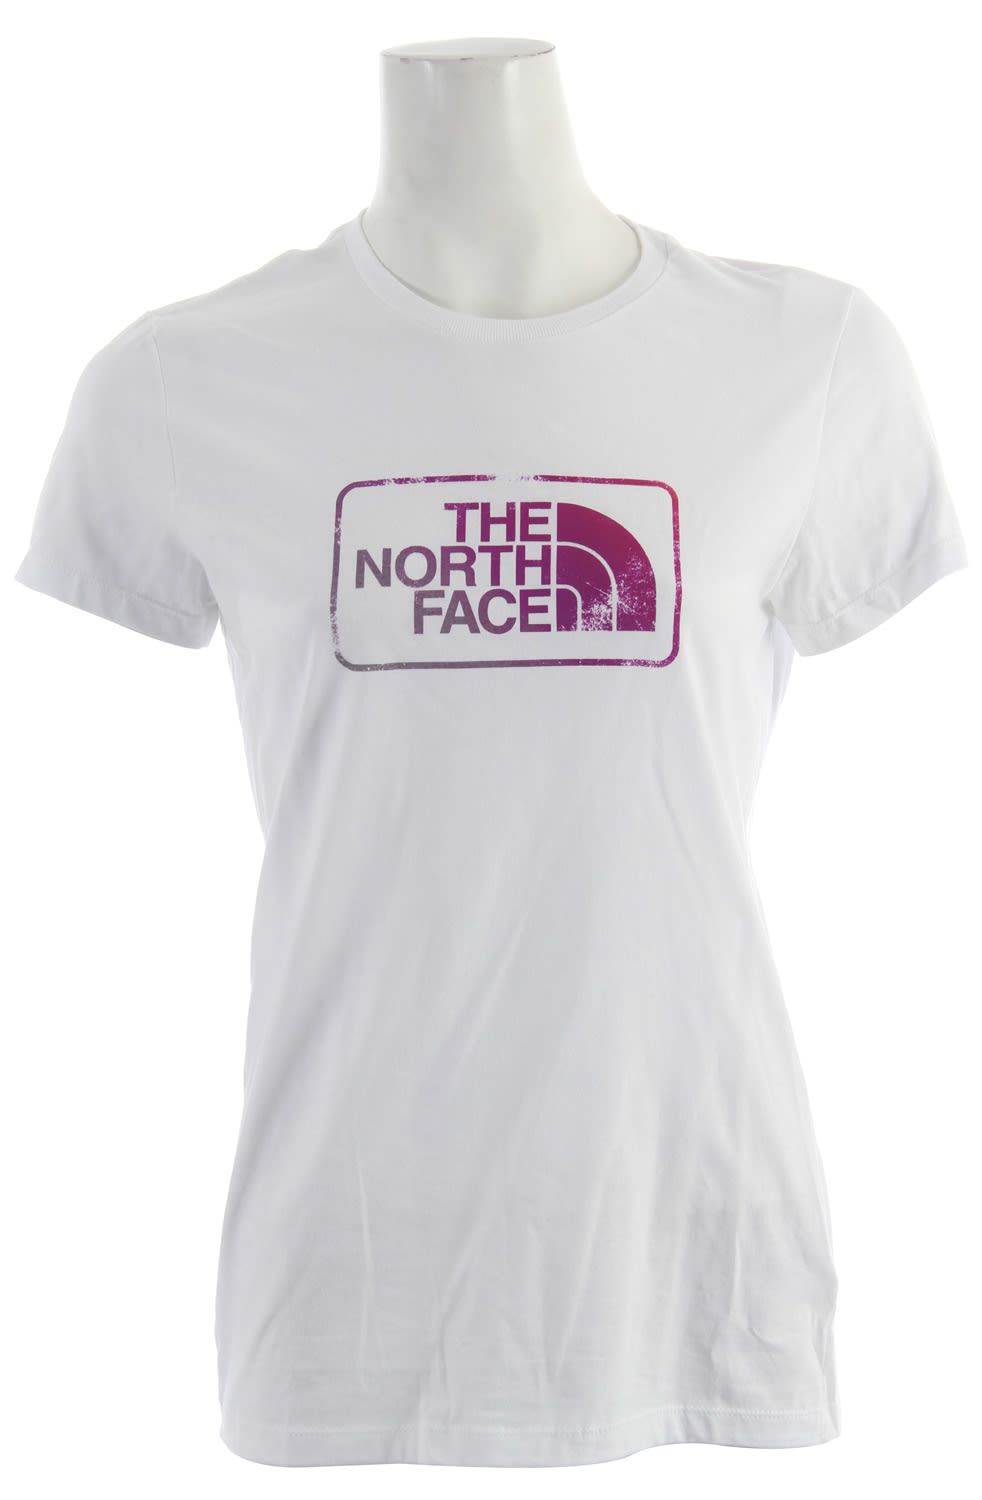 On Sale The North Face Marsily T Shirt Womens Up To 55 Off